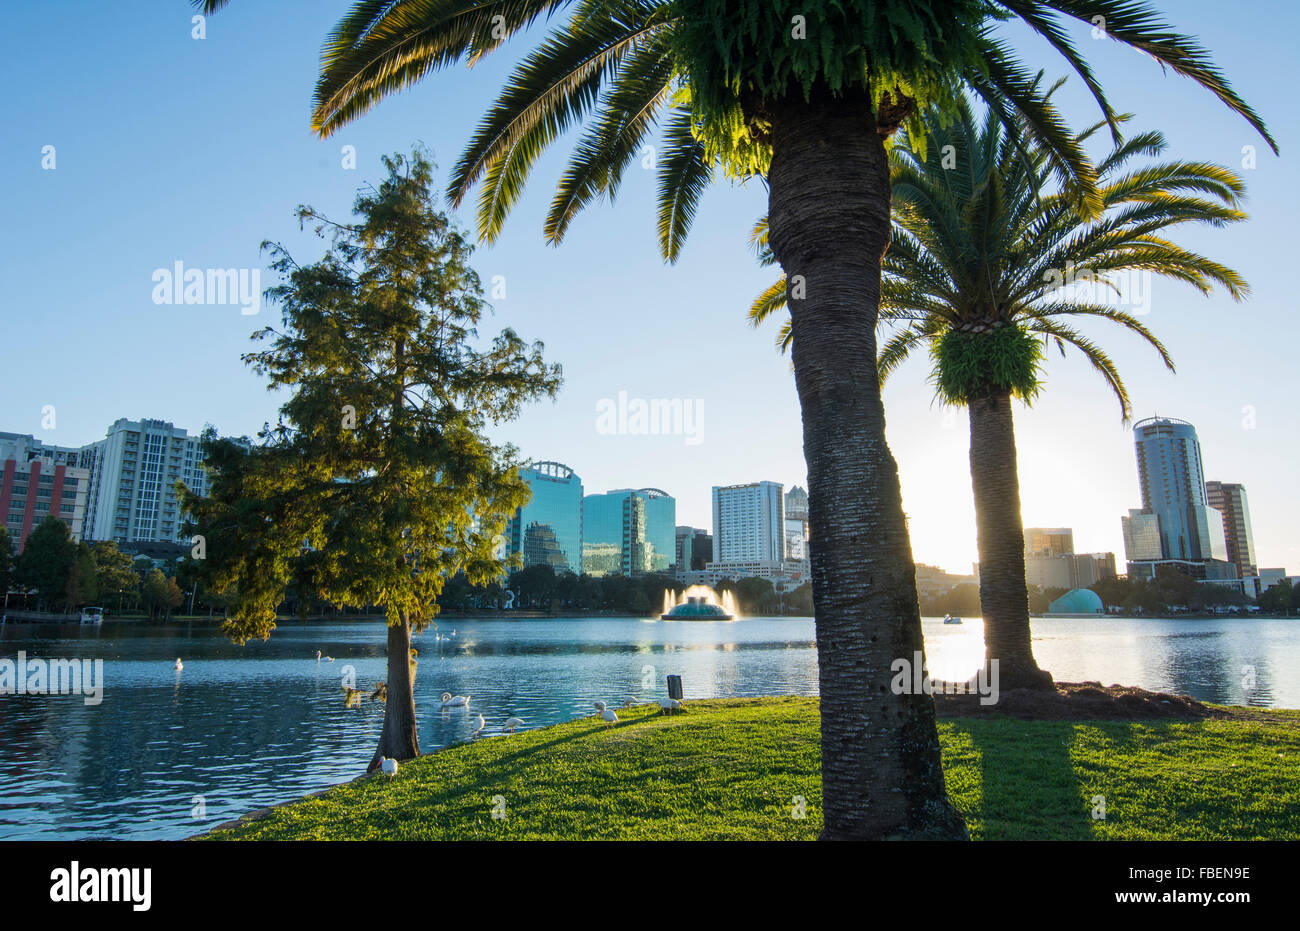 Orlando Florida Lake Eola Take skyline and fountain at  twilight with water and palms - Stock Image